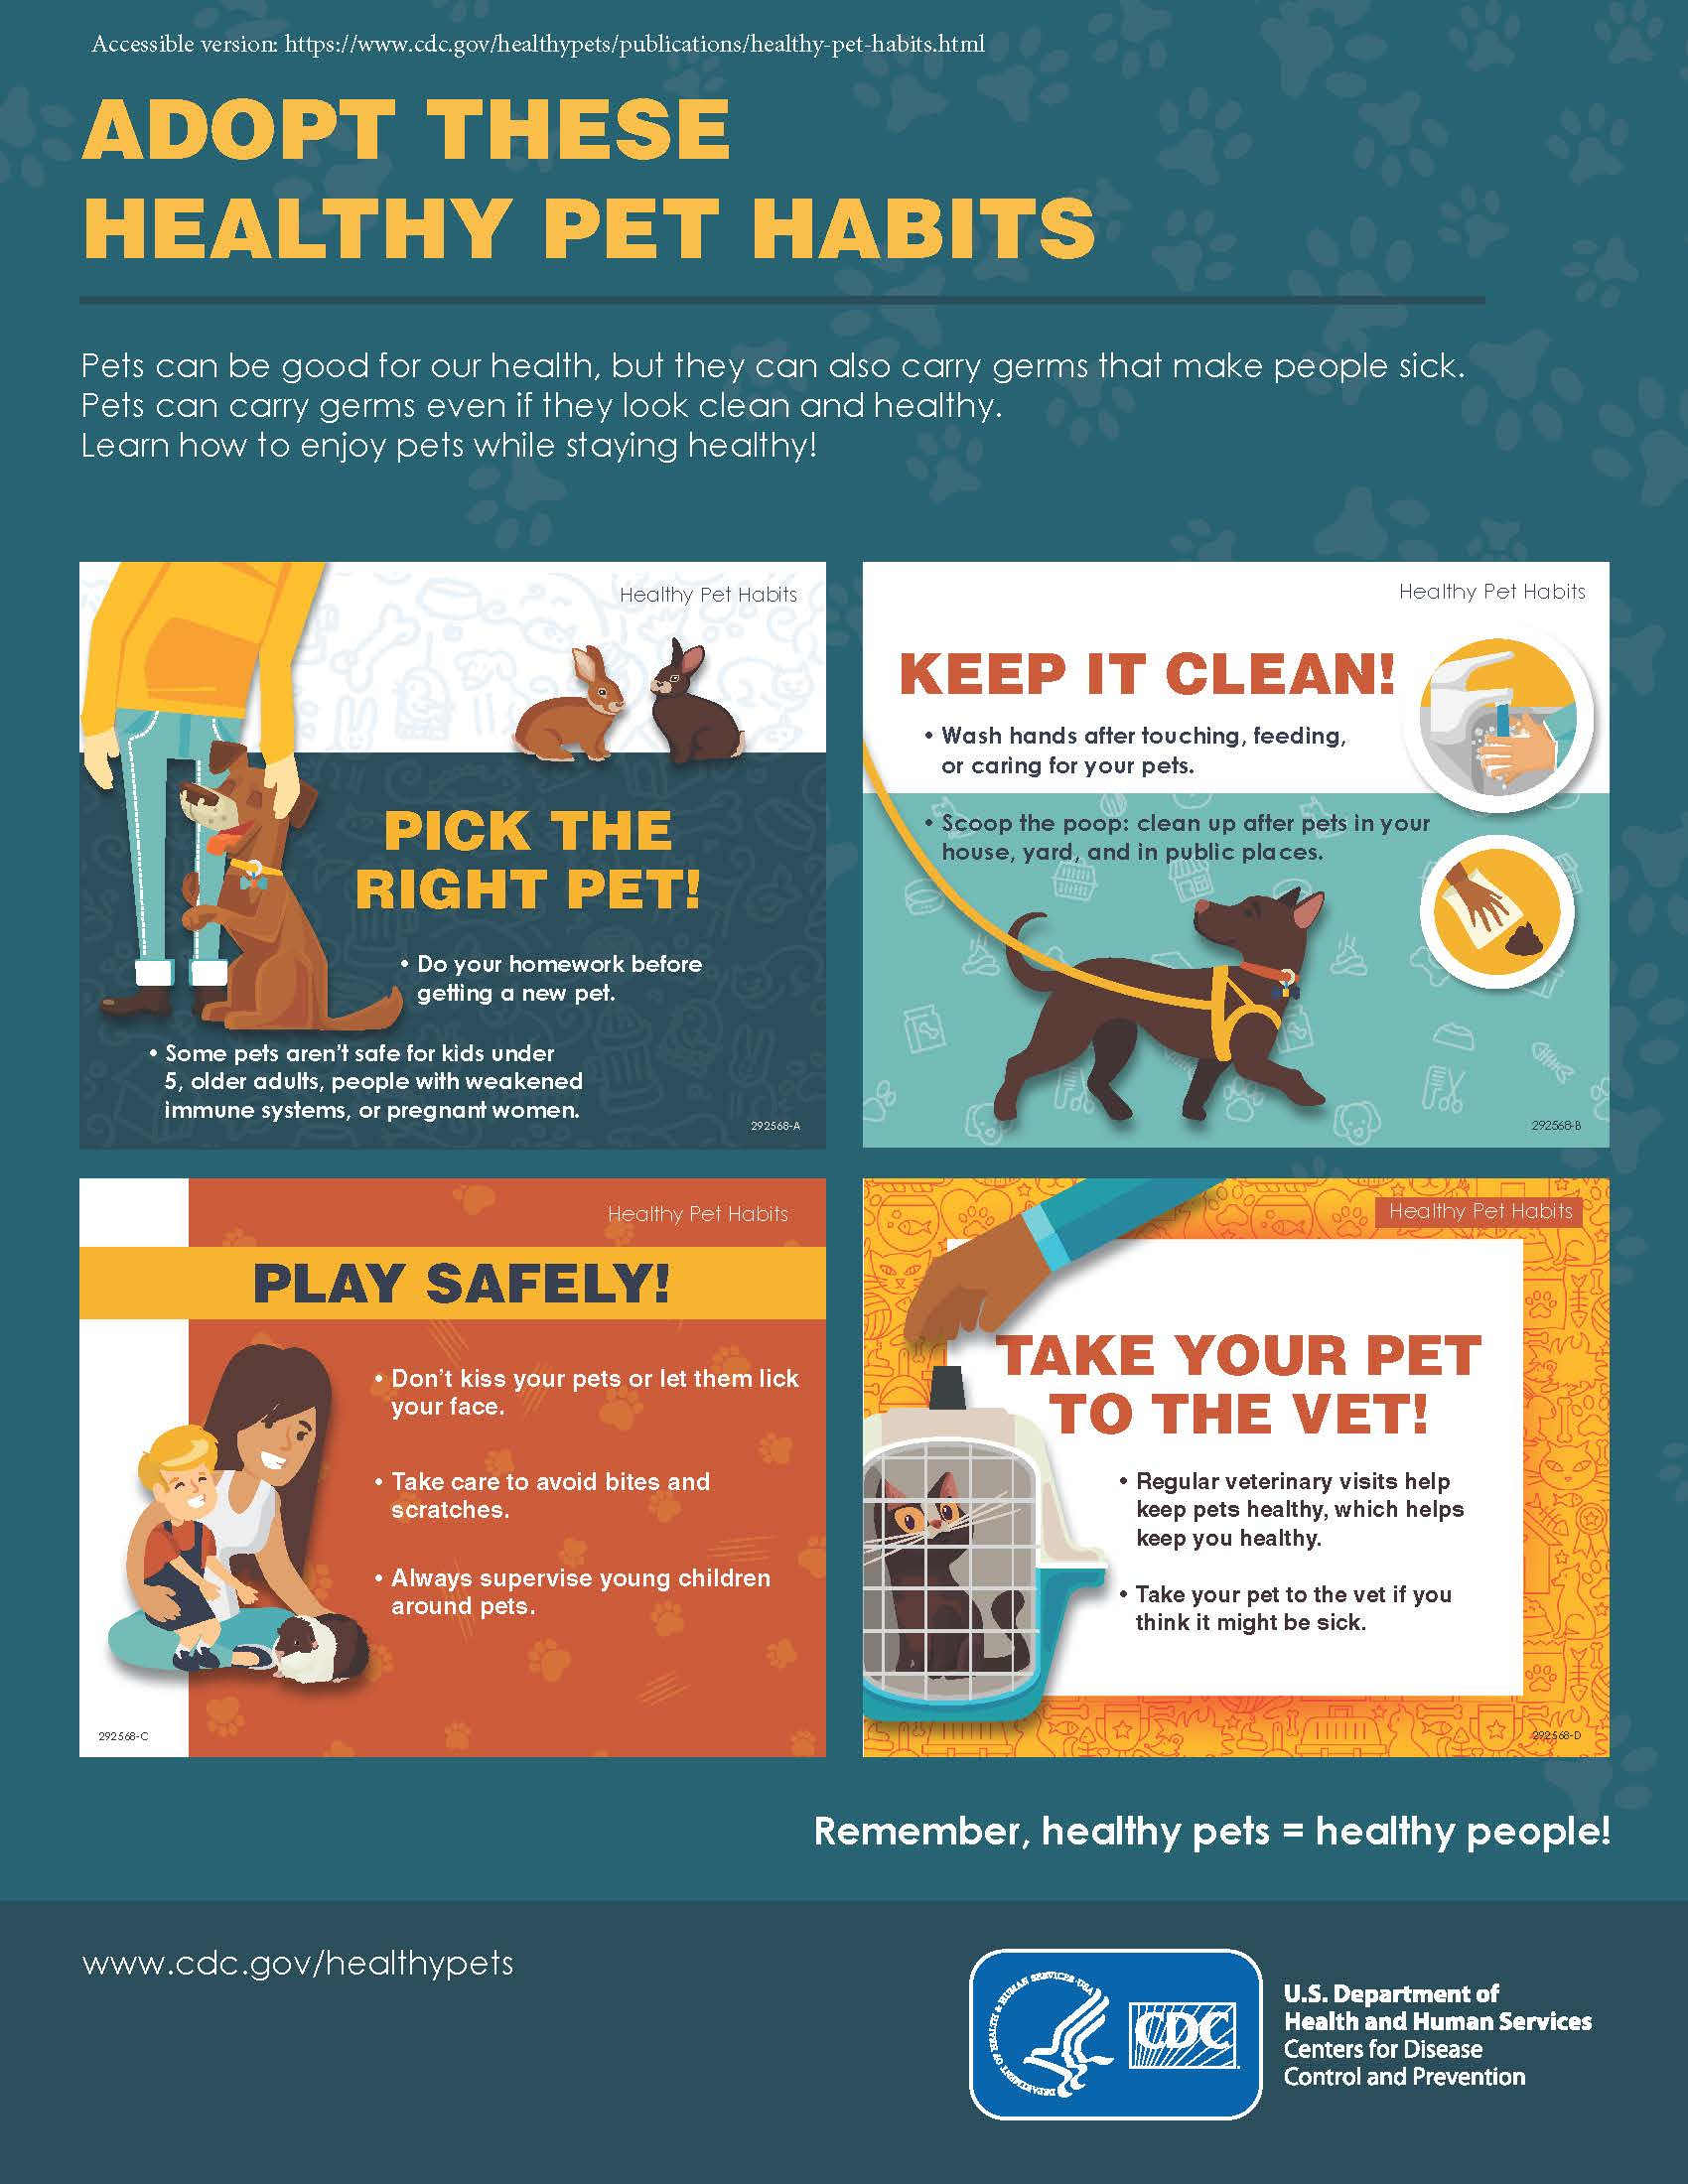 Healthy pet habits